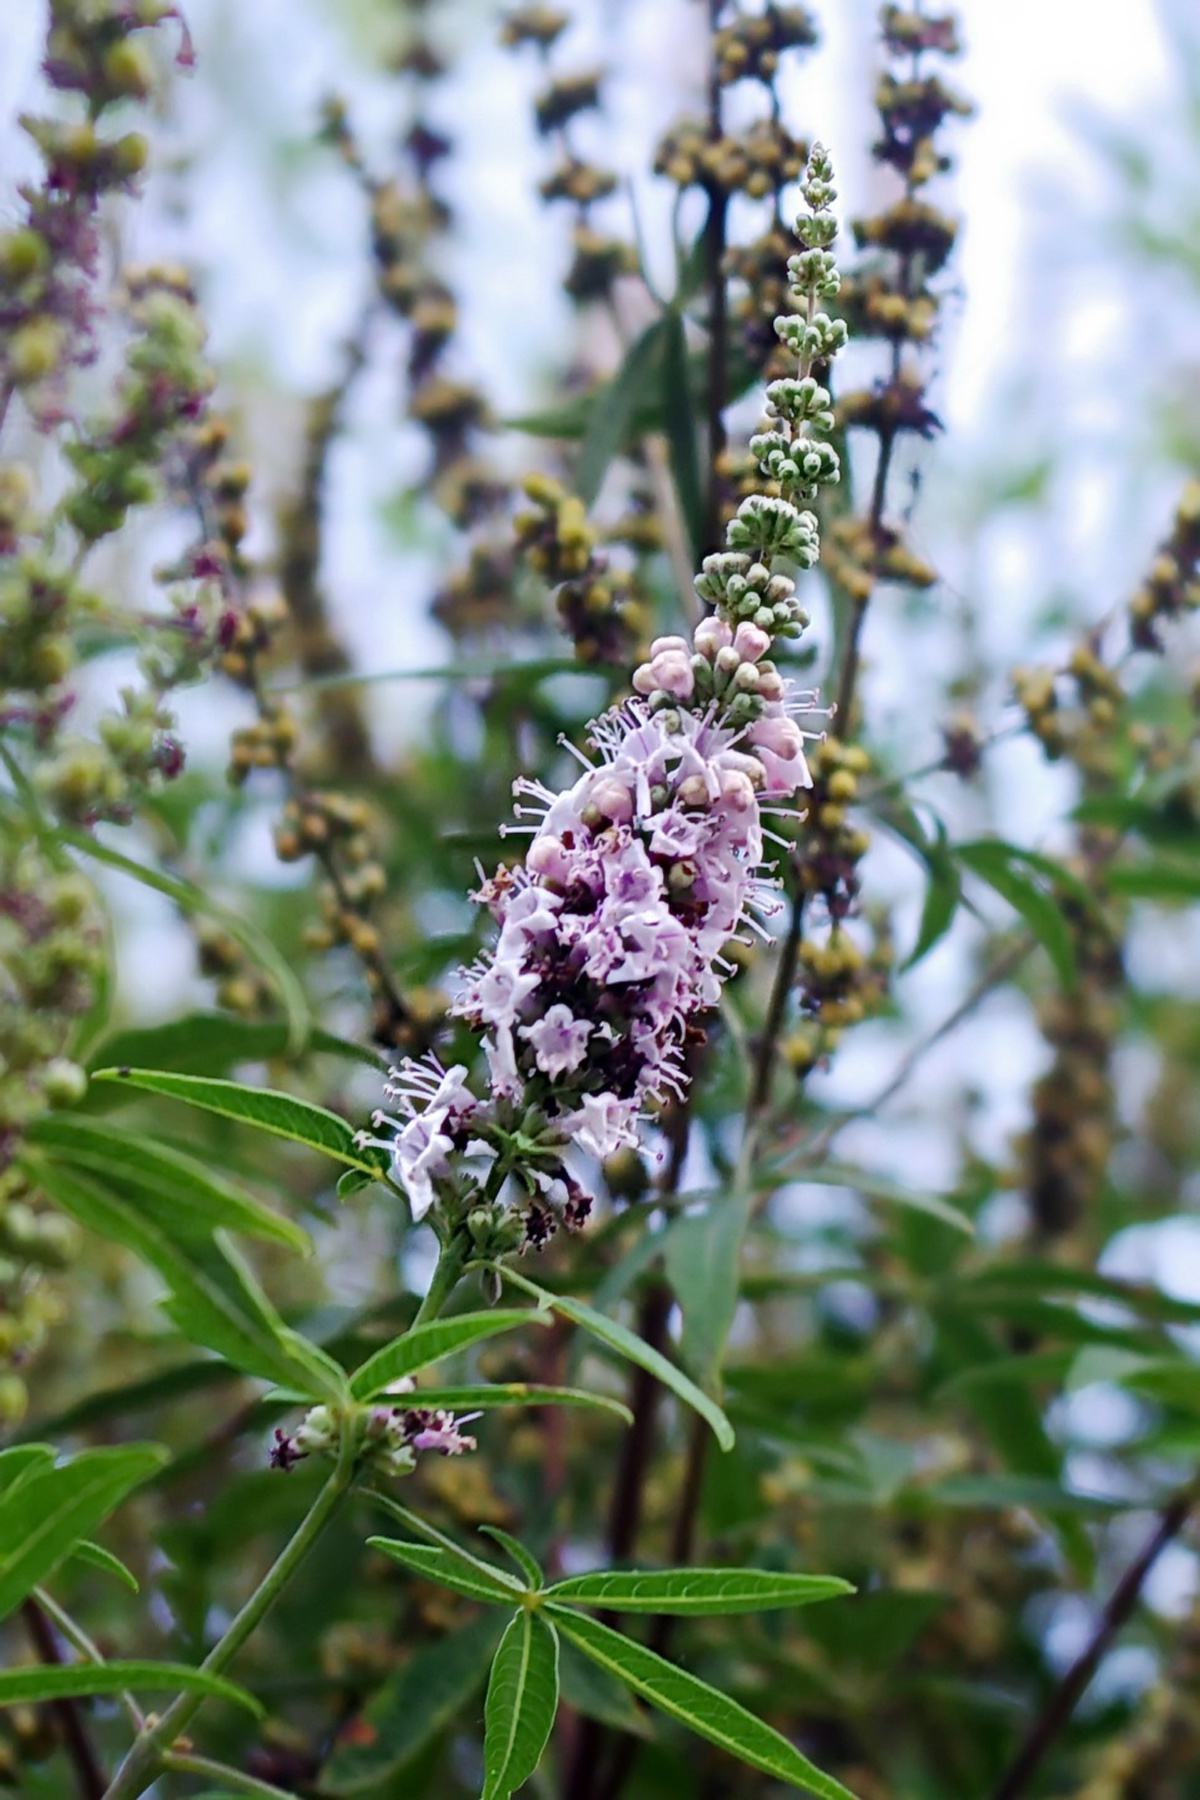 close-up of chaste tree branch with purple flowers